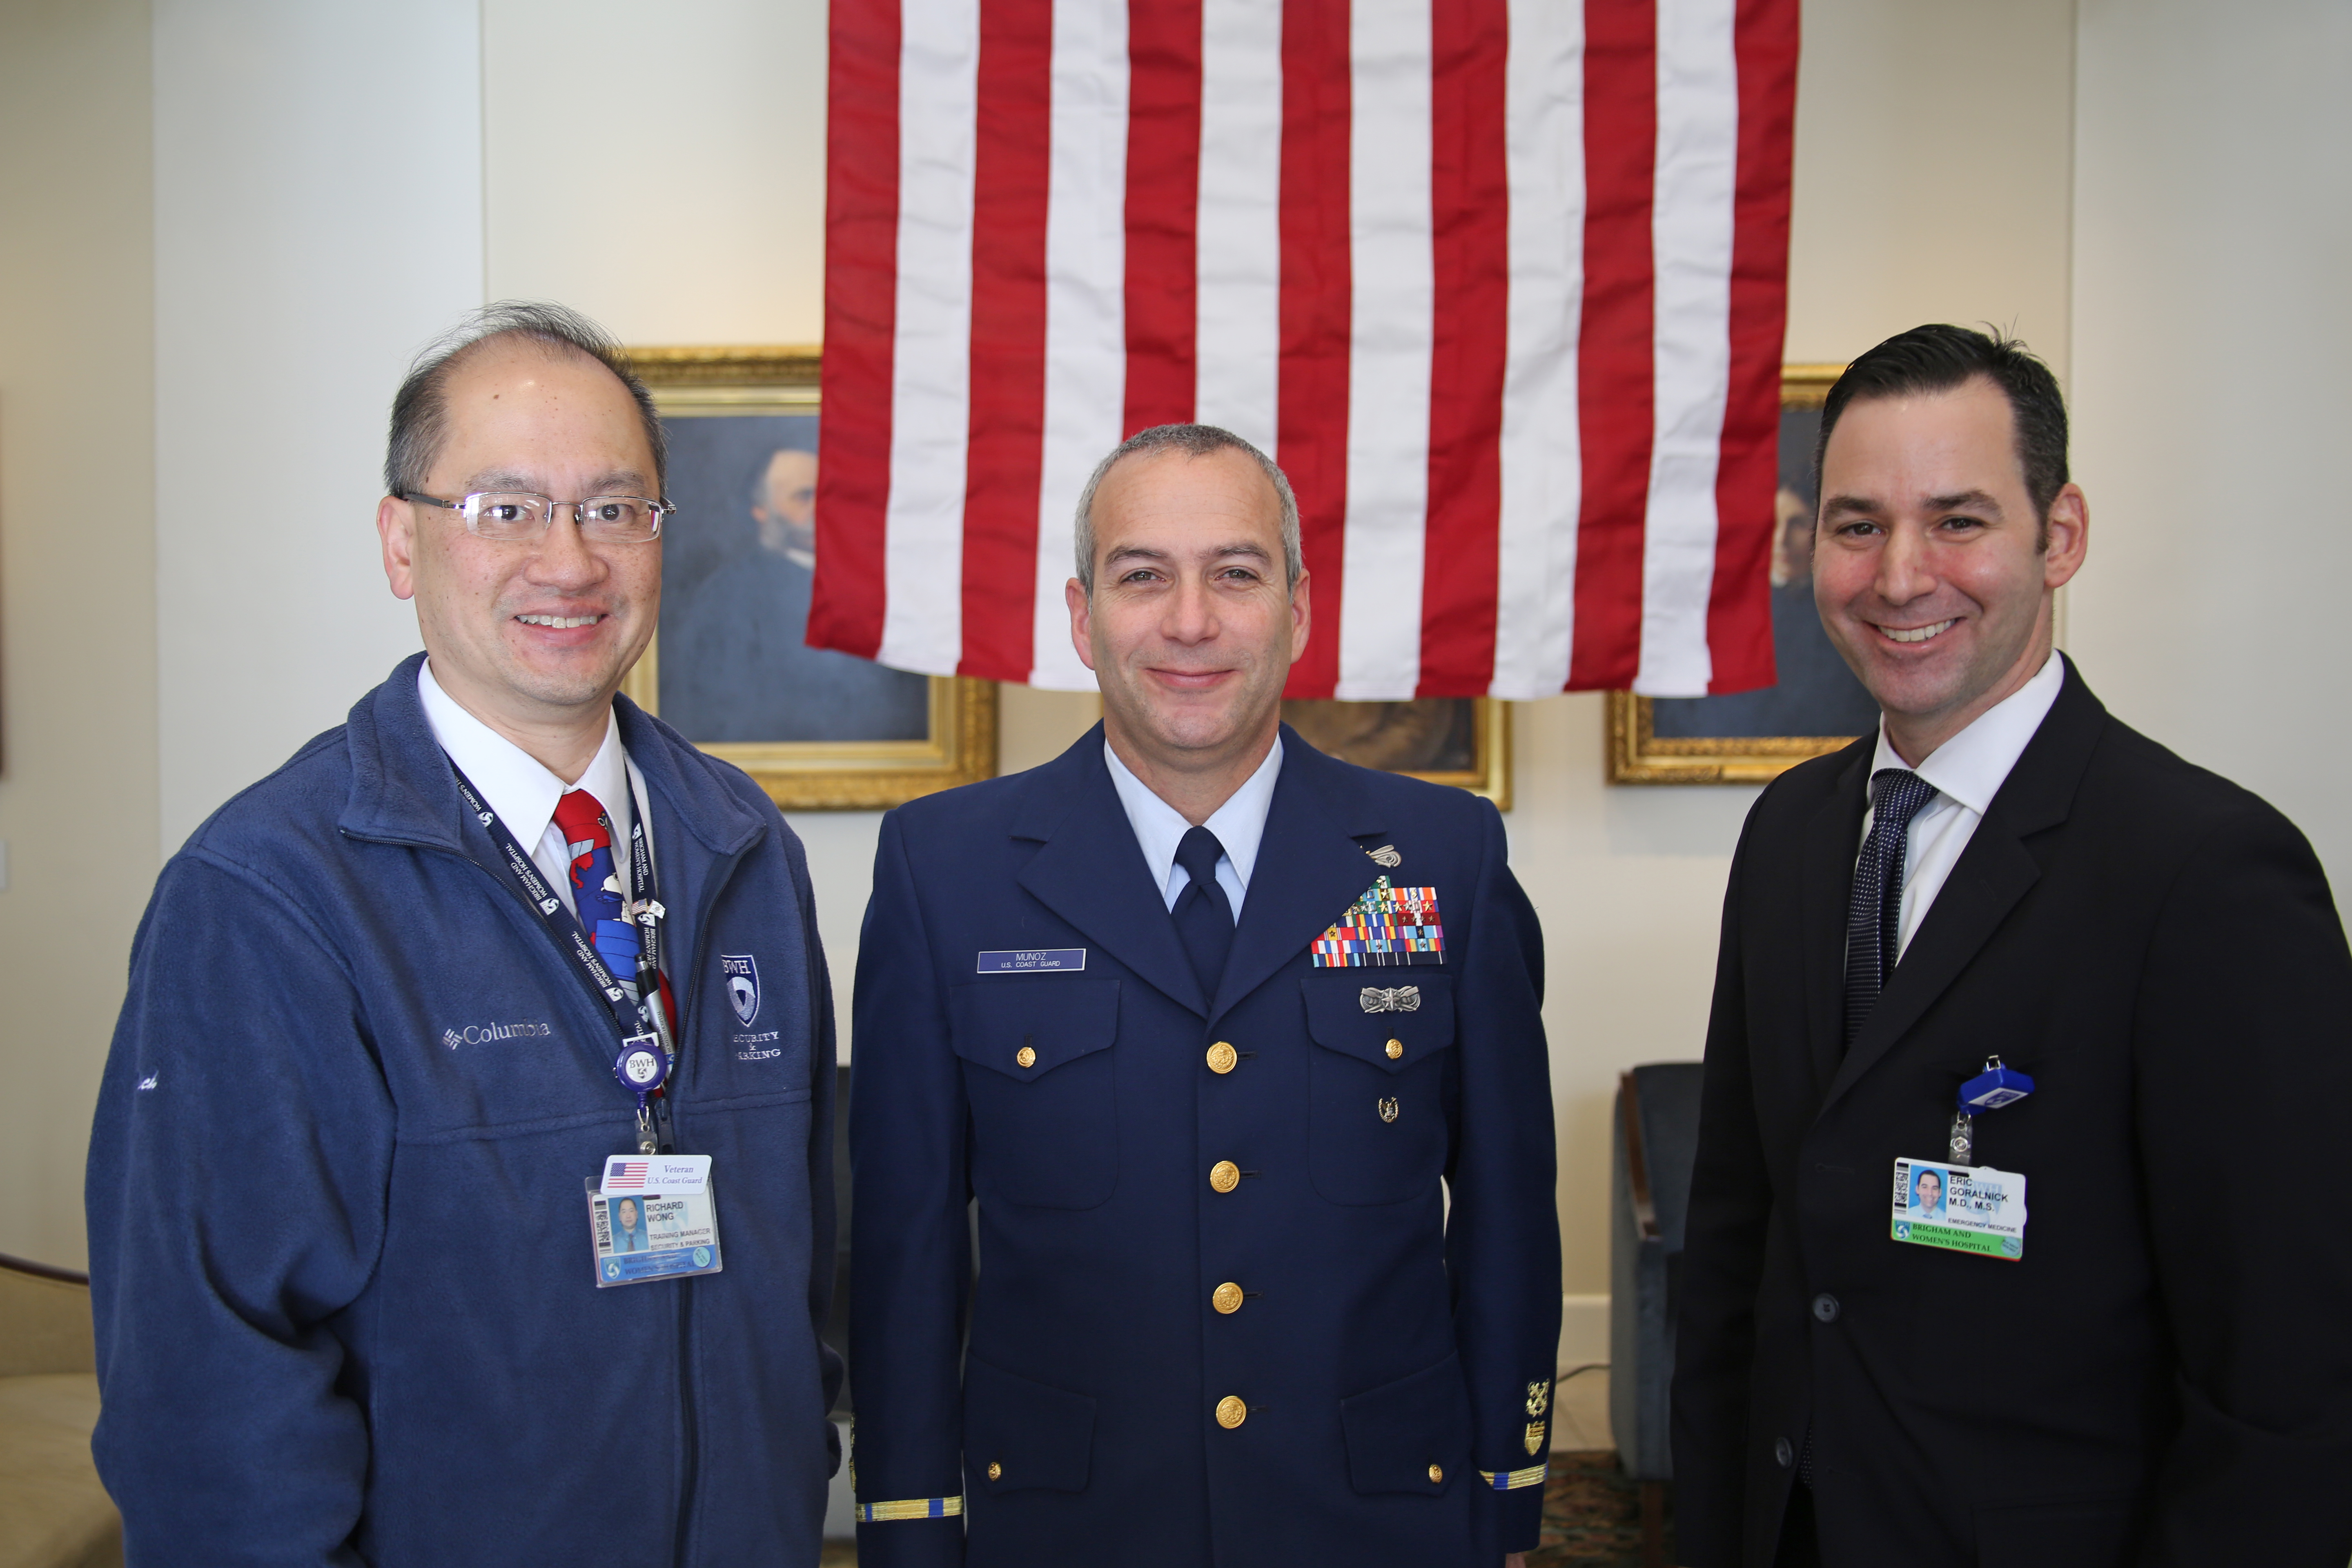 From left: BWHers and military veterans Richard Wong and Luis Muñoz, of the U.S. Coast Guard, and Eric Goralnick, of the U.S. Navy